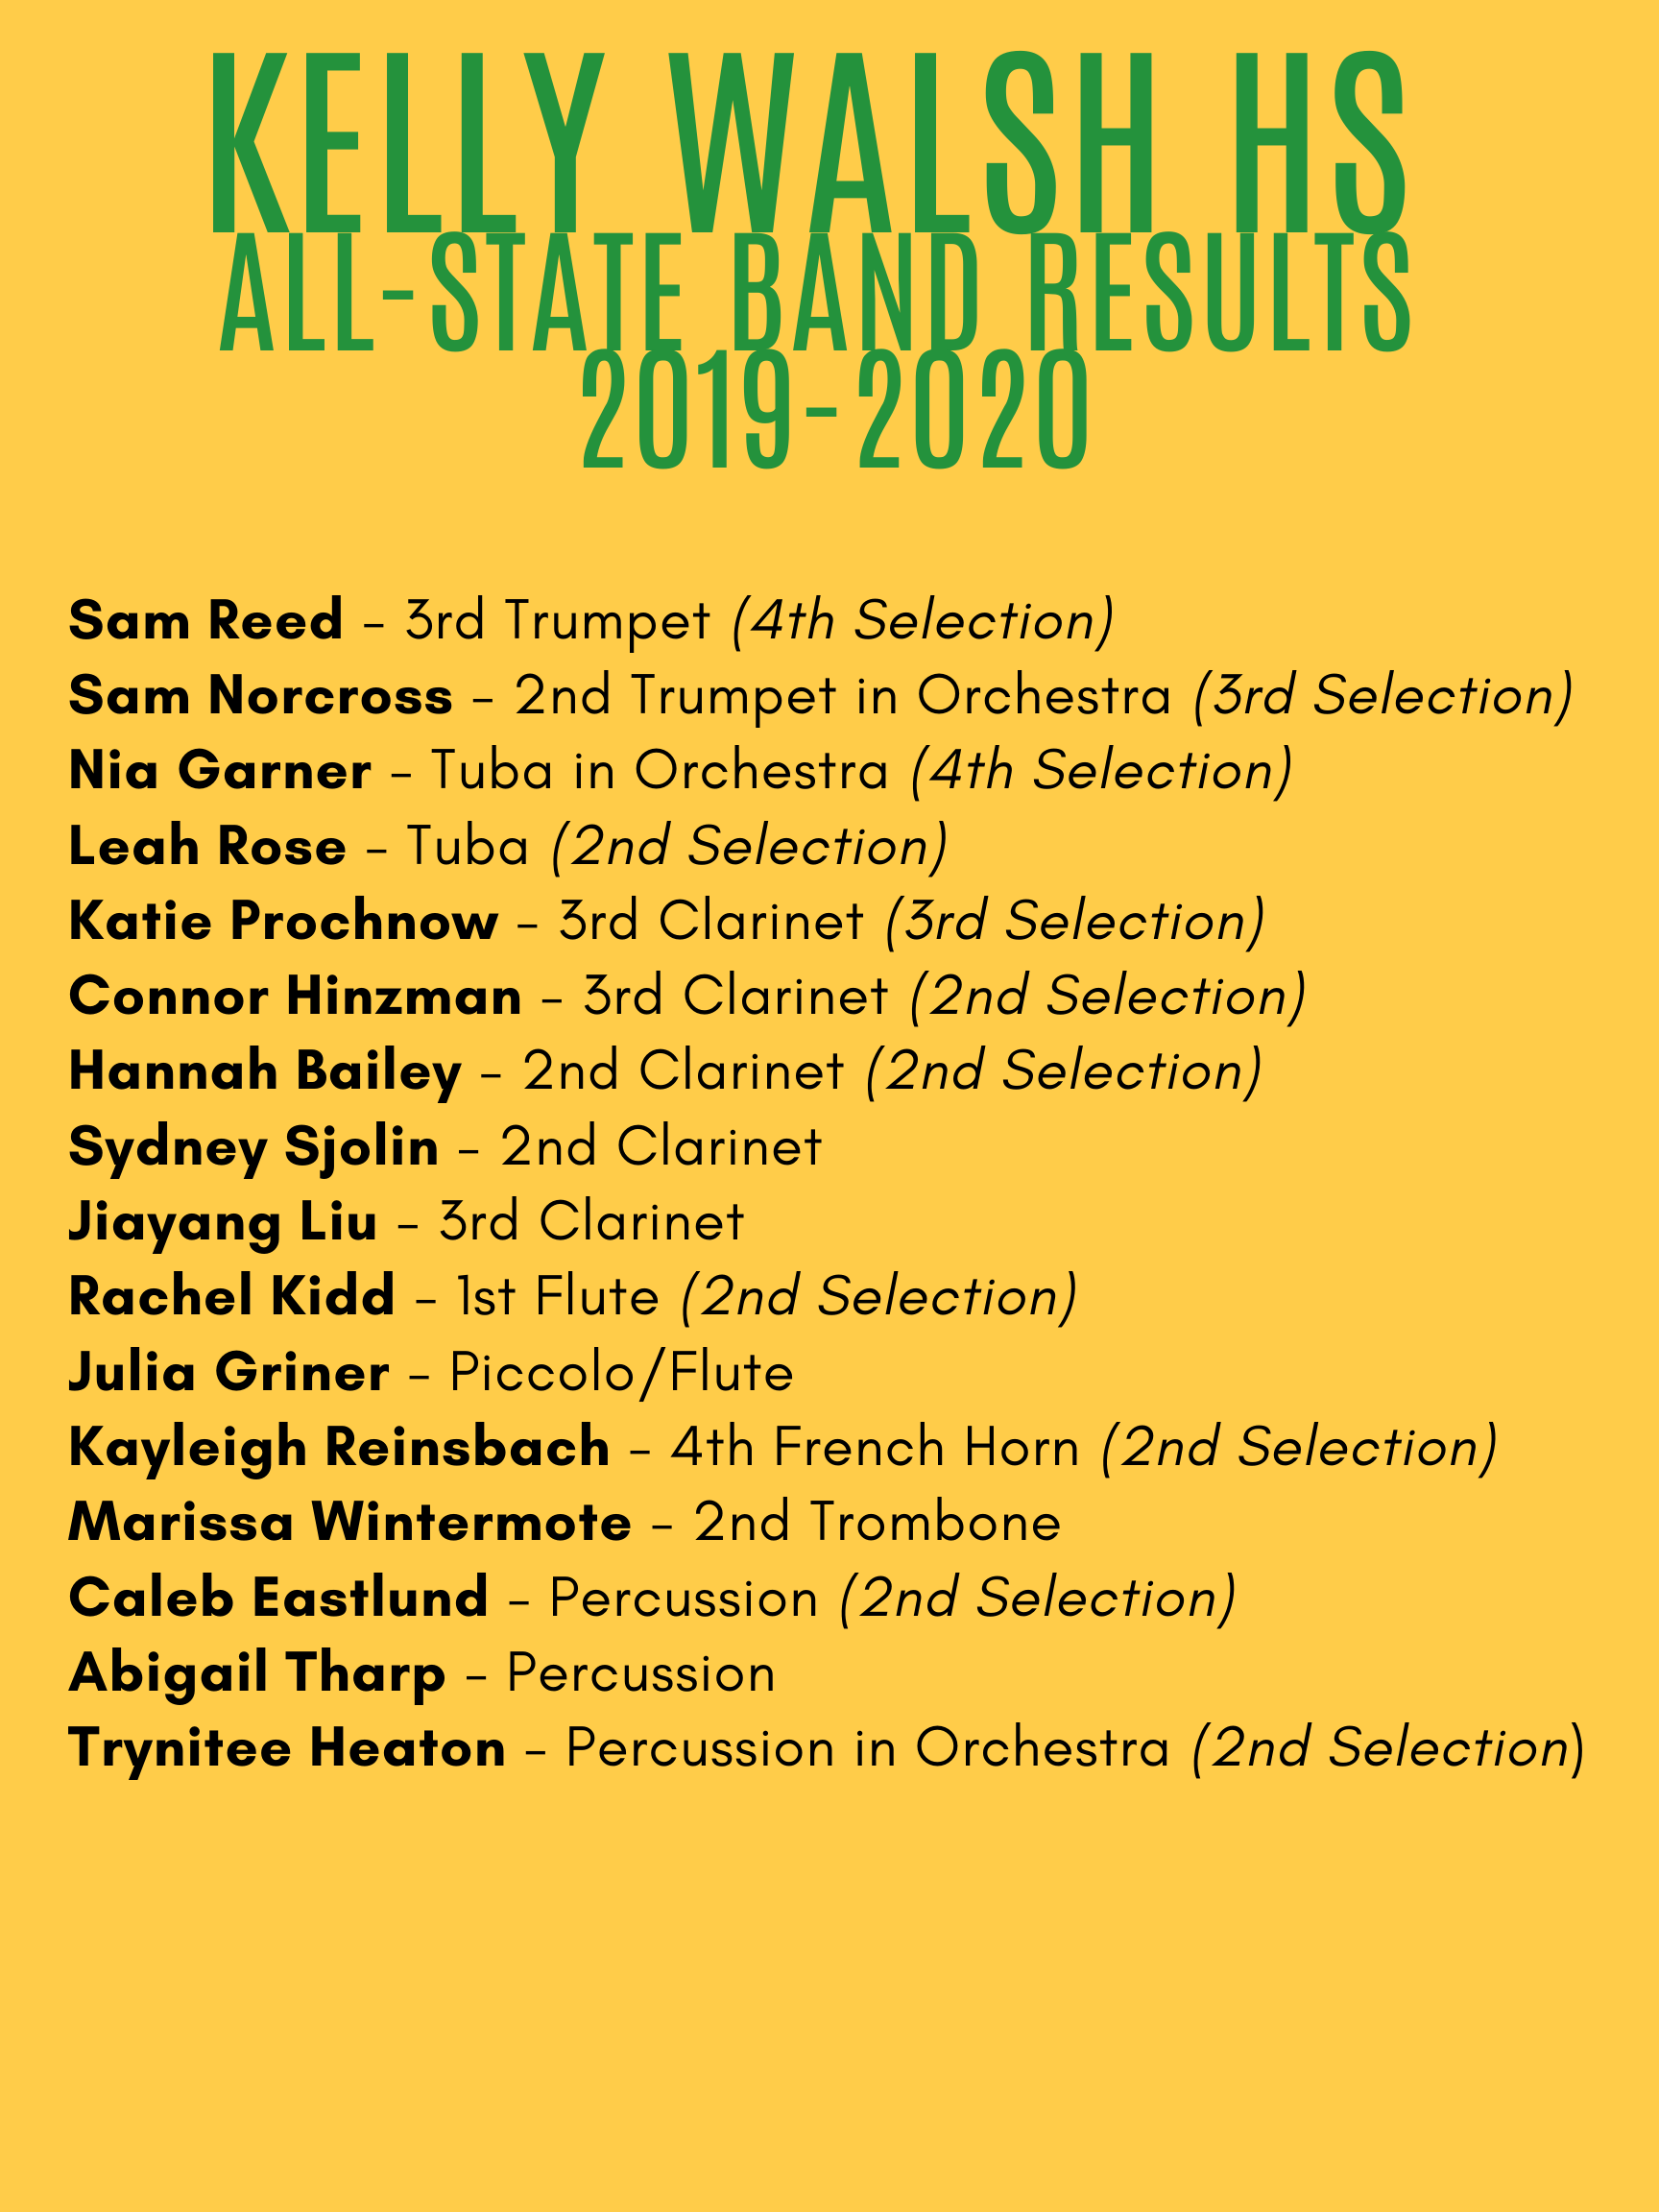 kelly-walsh-hs-jazz-band-audition-results-2019